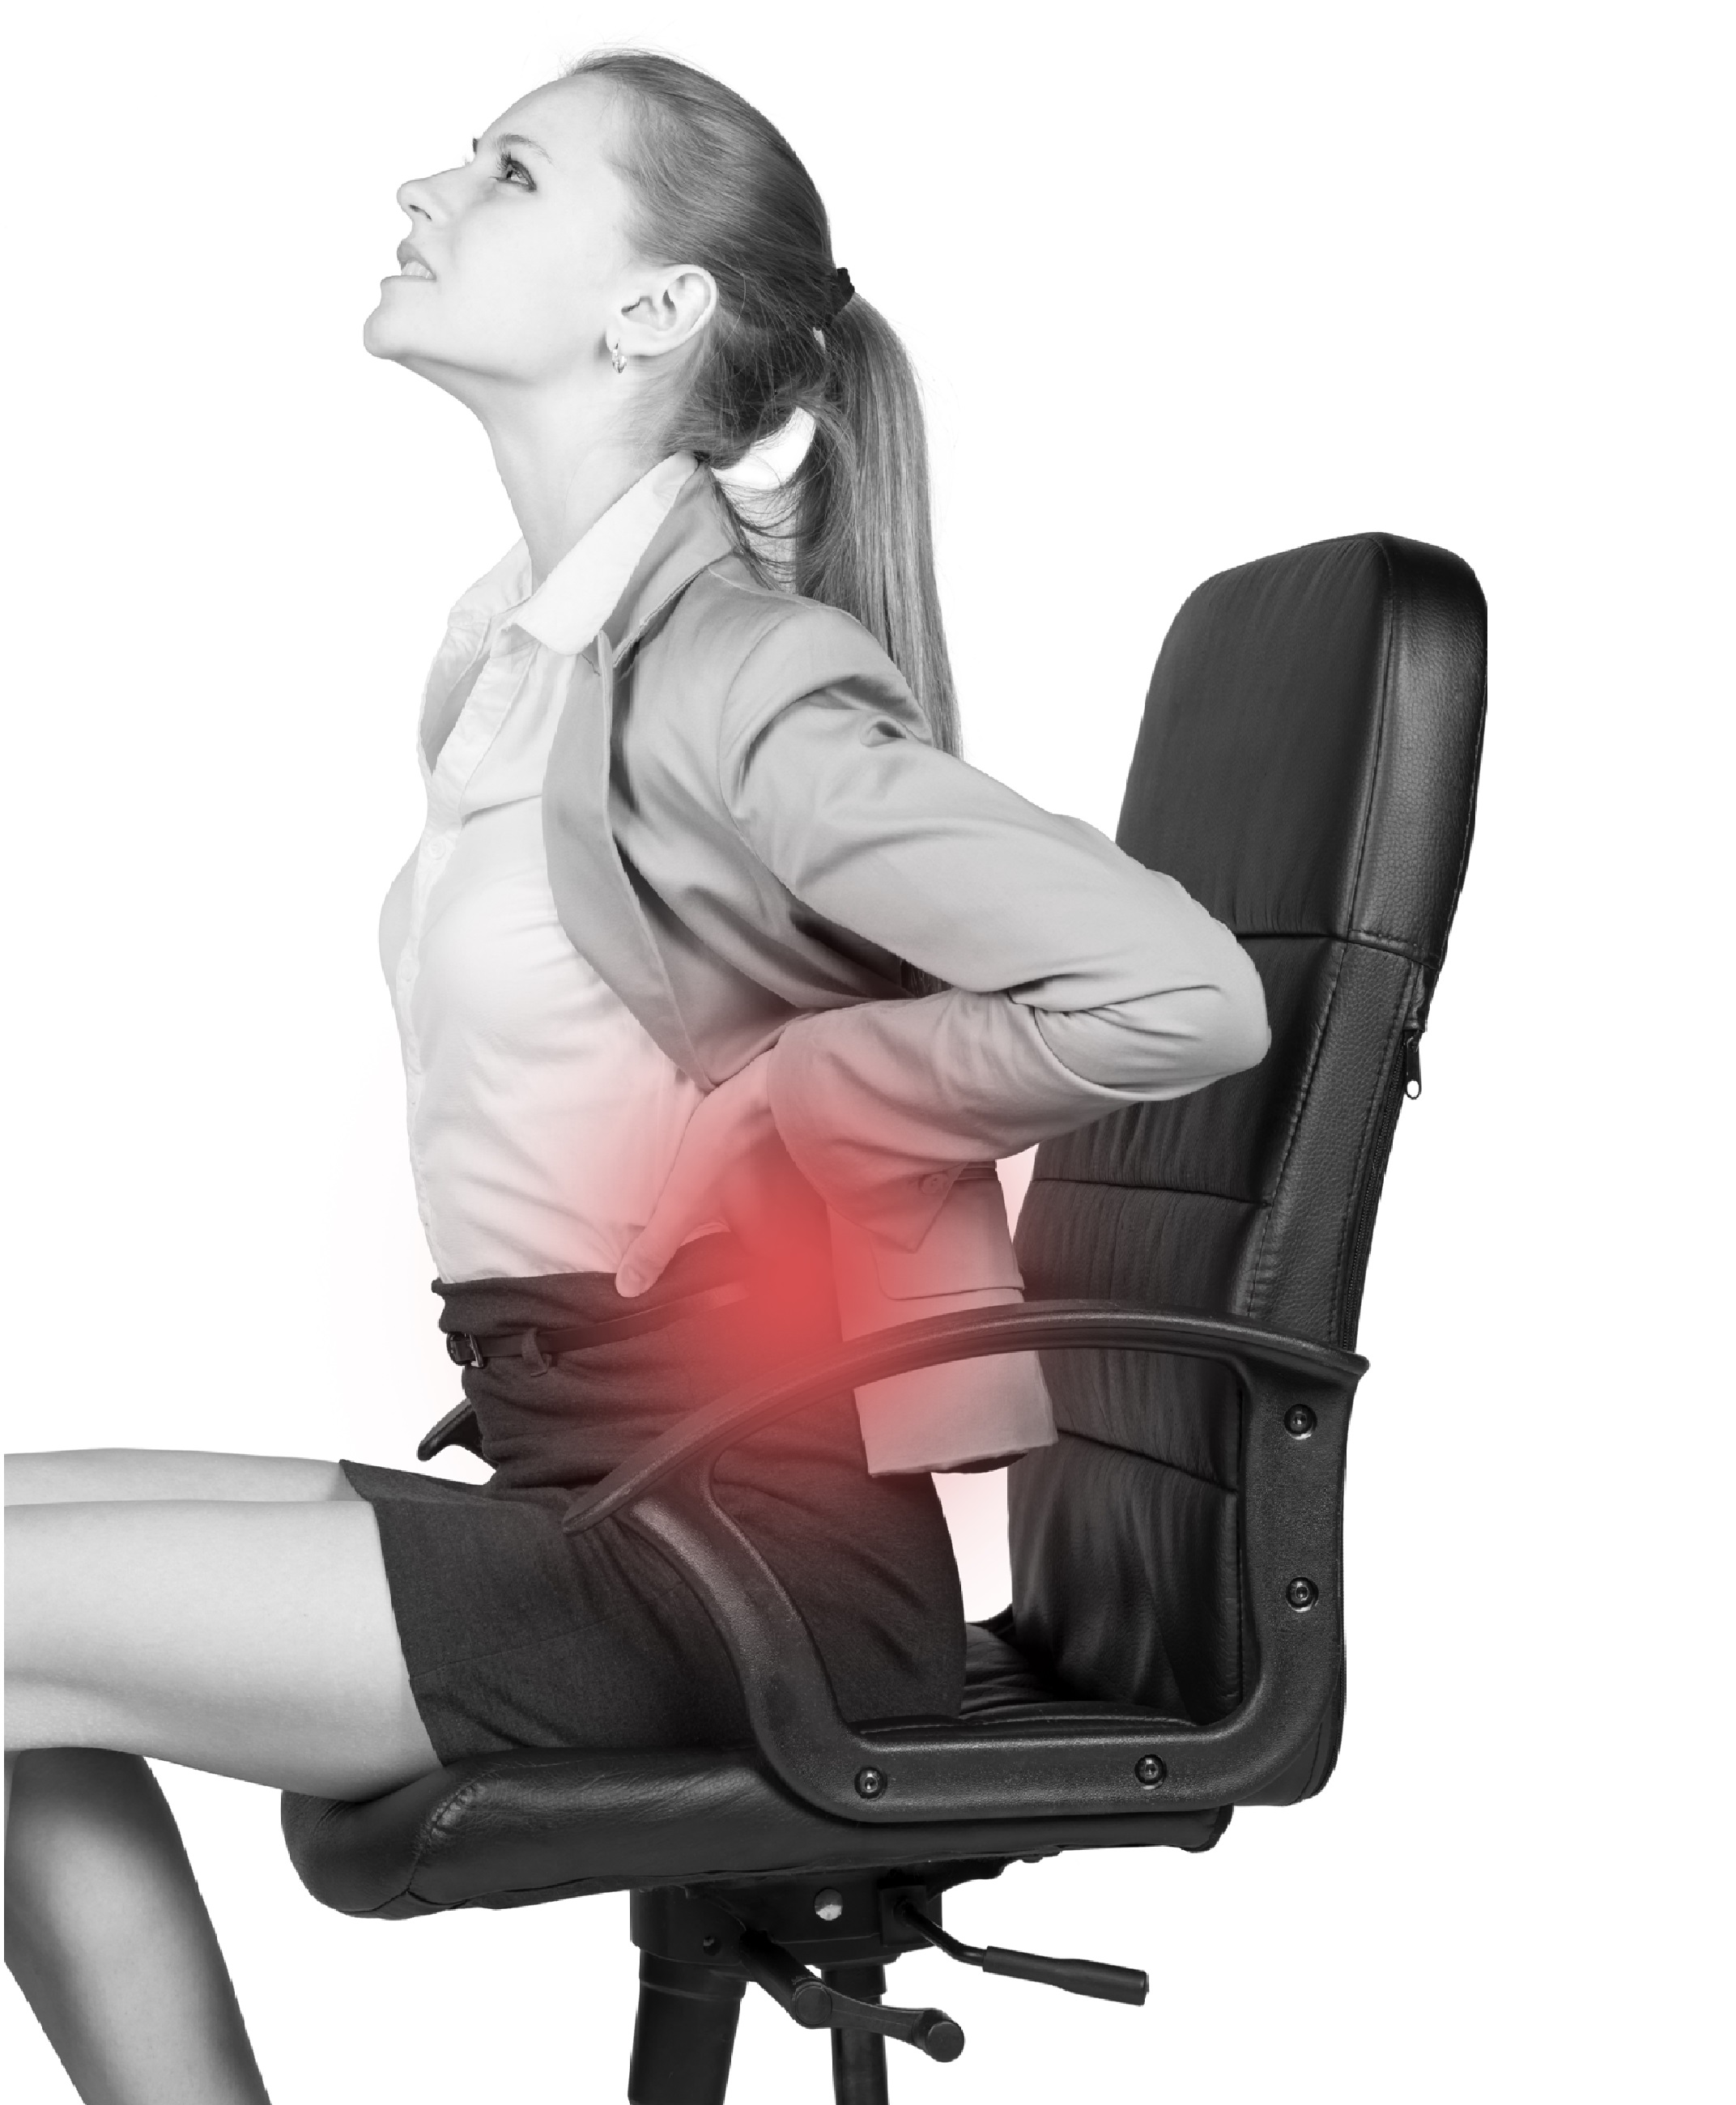 Back Pain while working from home.